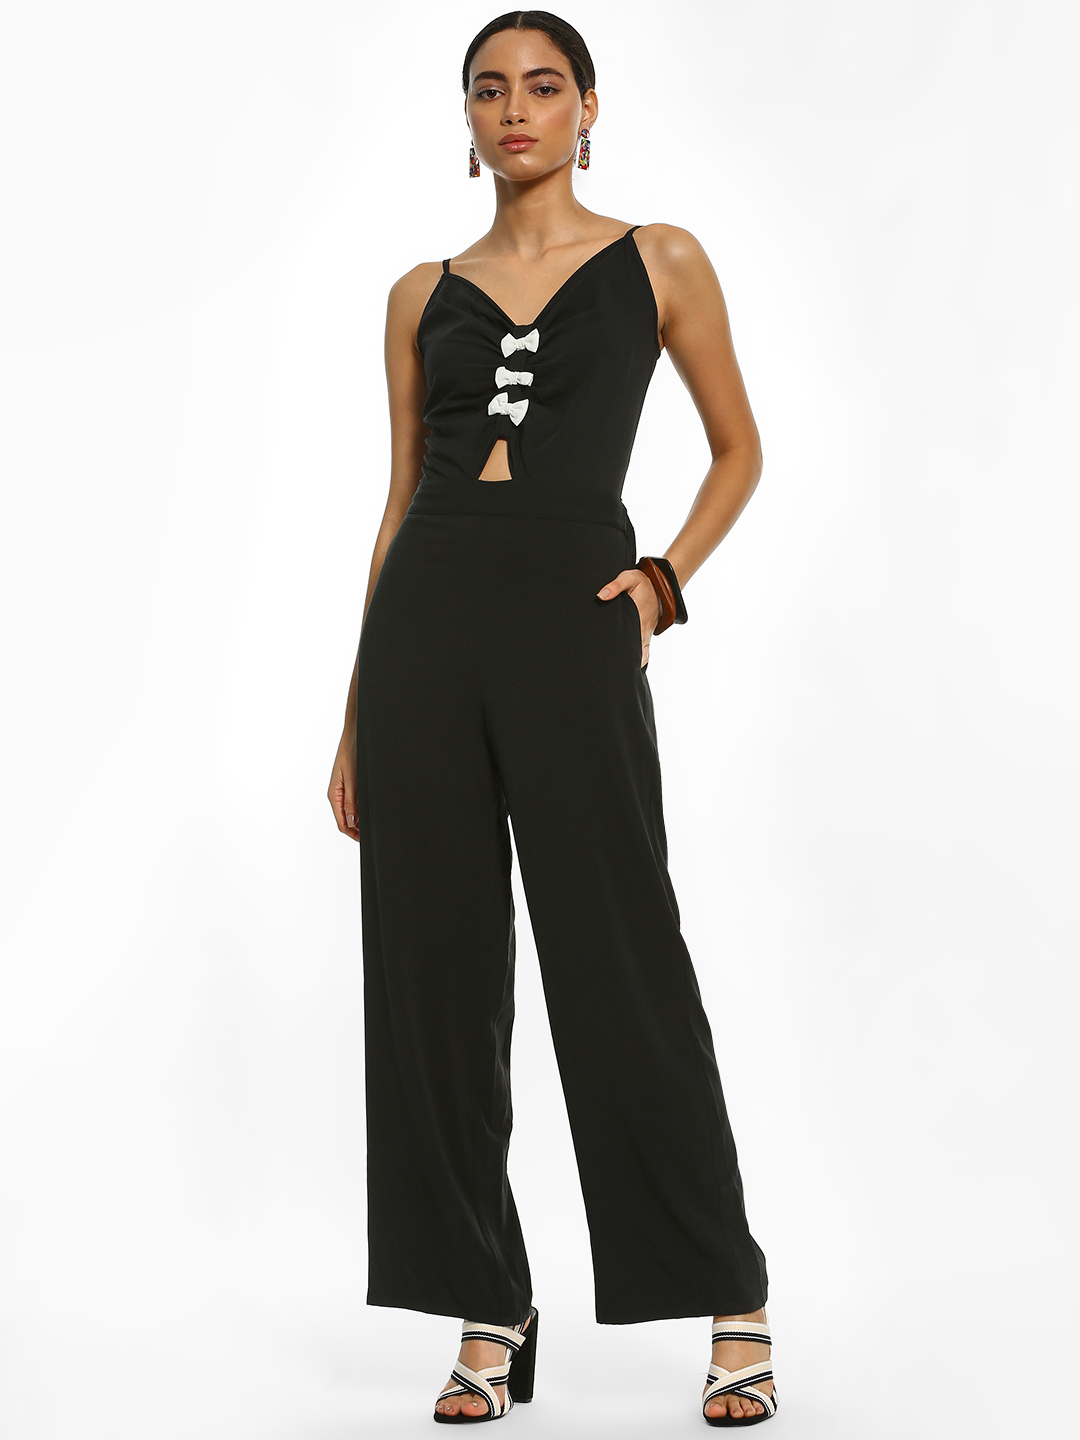 Ri-Dress Black Tie-Knot Back Strappy Jumpsuit 1